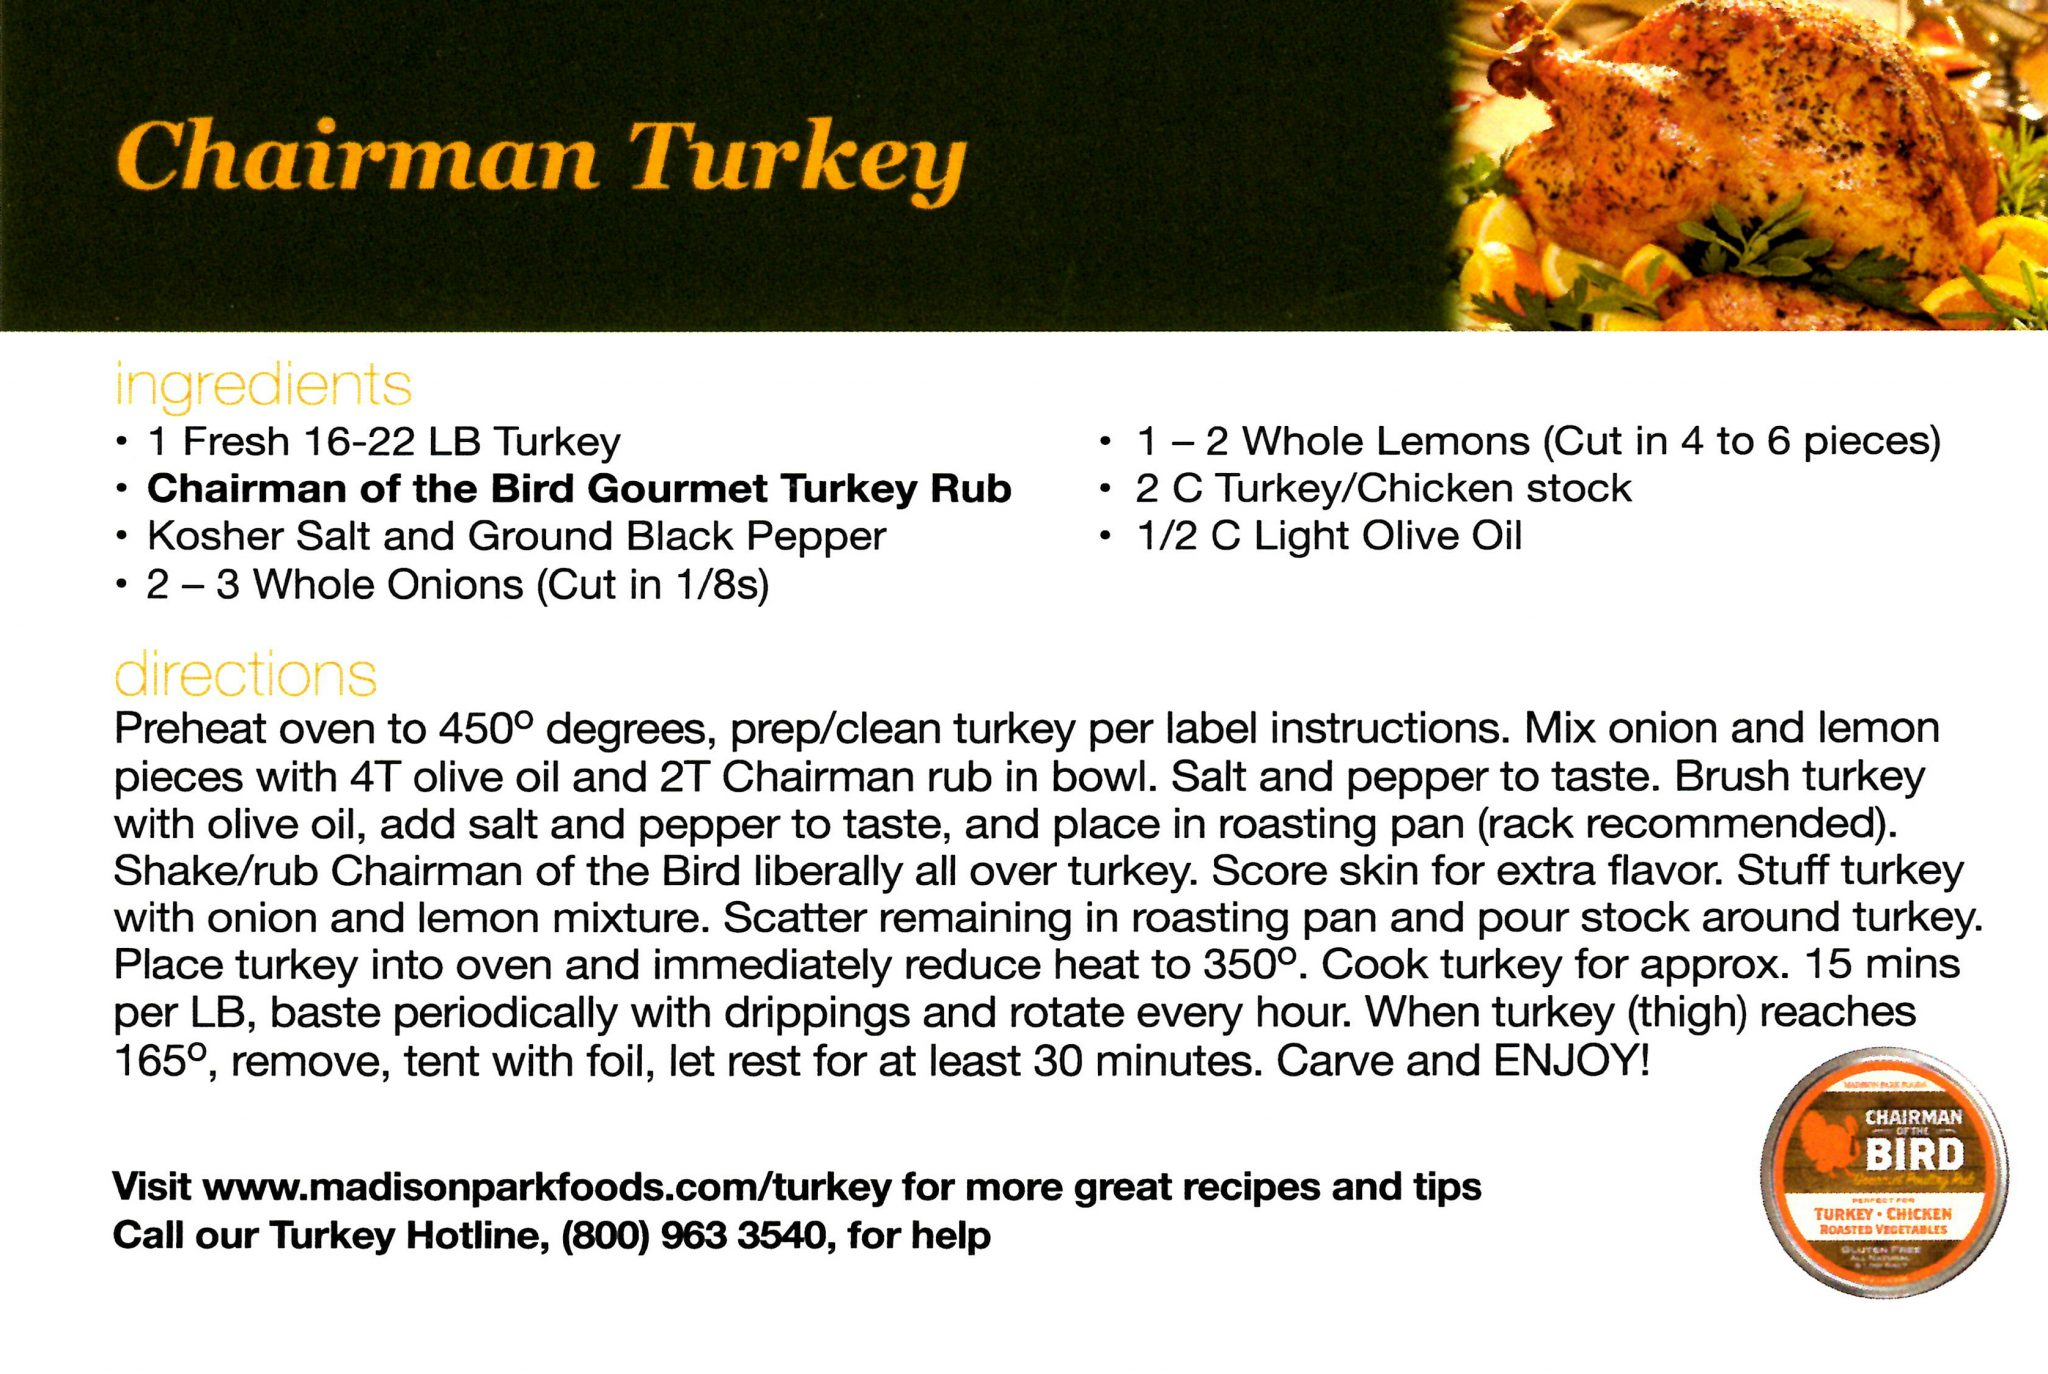 Madison Park Foods Turkey Recipe Card